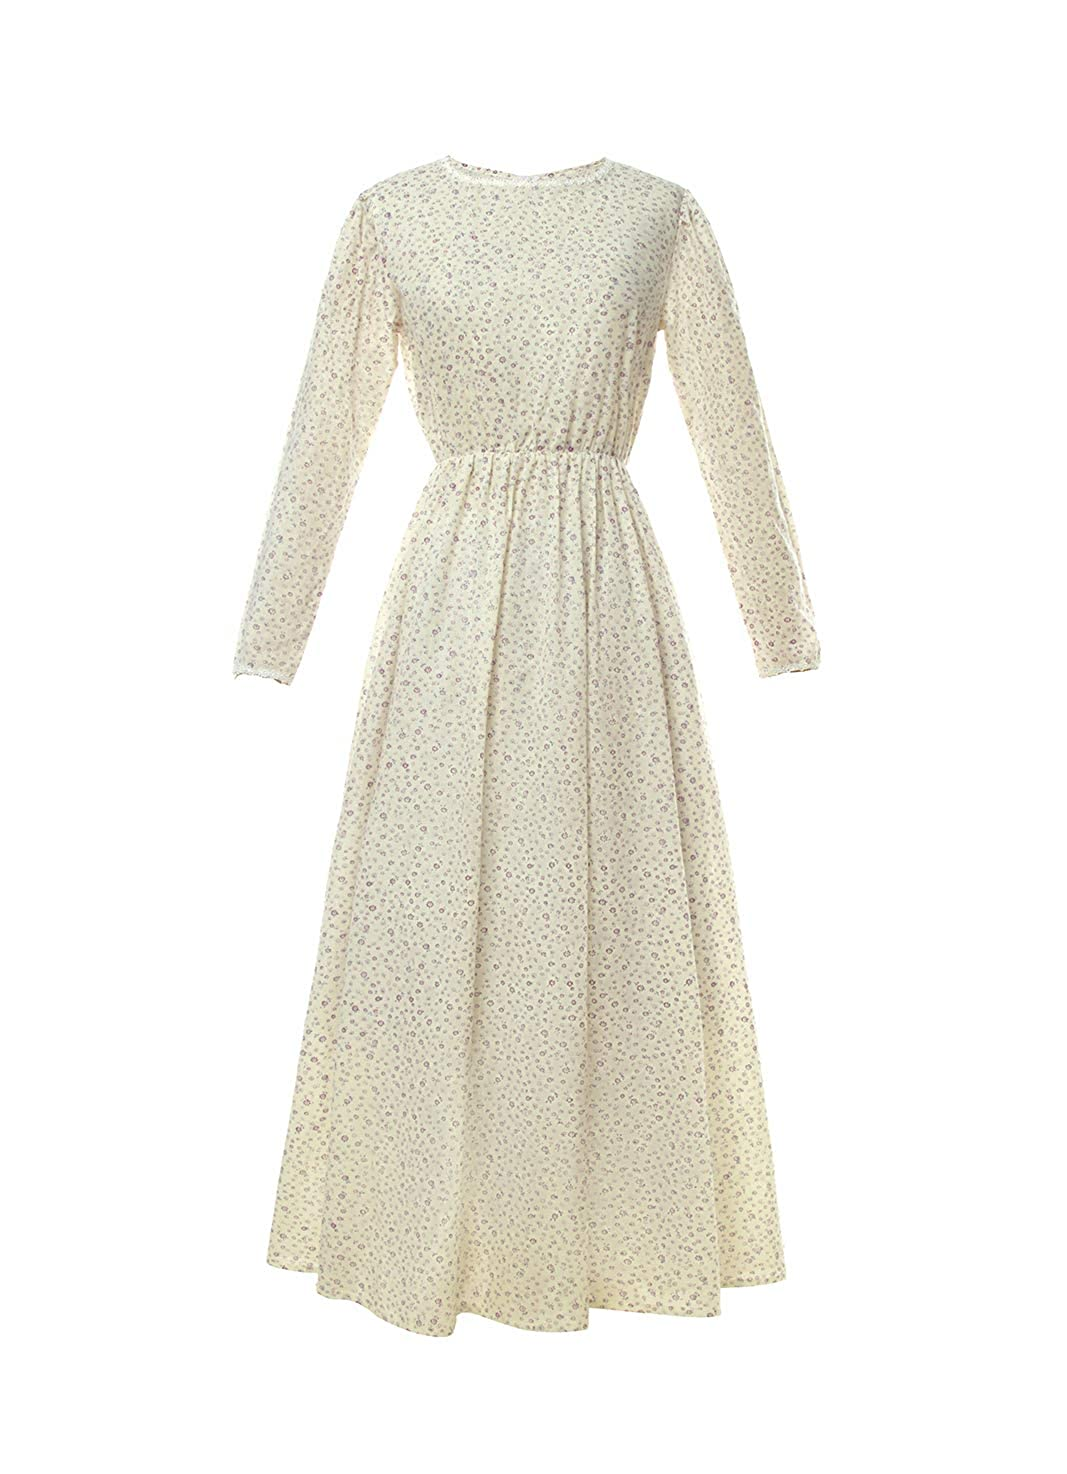 Old Fashioned Dresses | Old Dress Styles ROLECOS Pioneer Women Costume Floral Prairie Dress Deluxe Colonial Dress Laura Ingalls Costume $31.99 AT vintagedancer.com